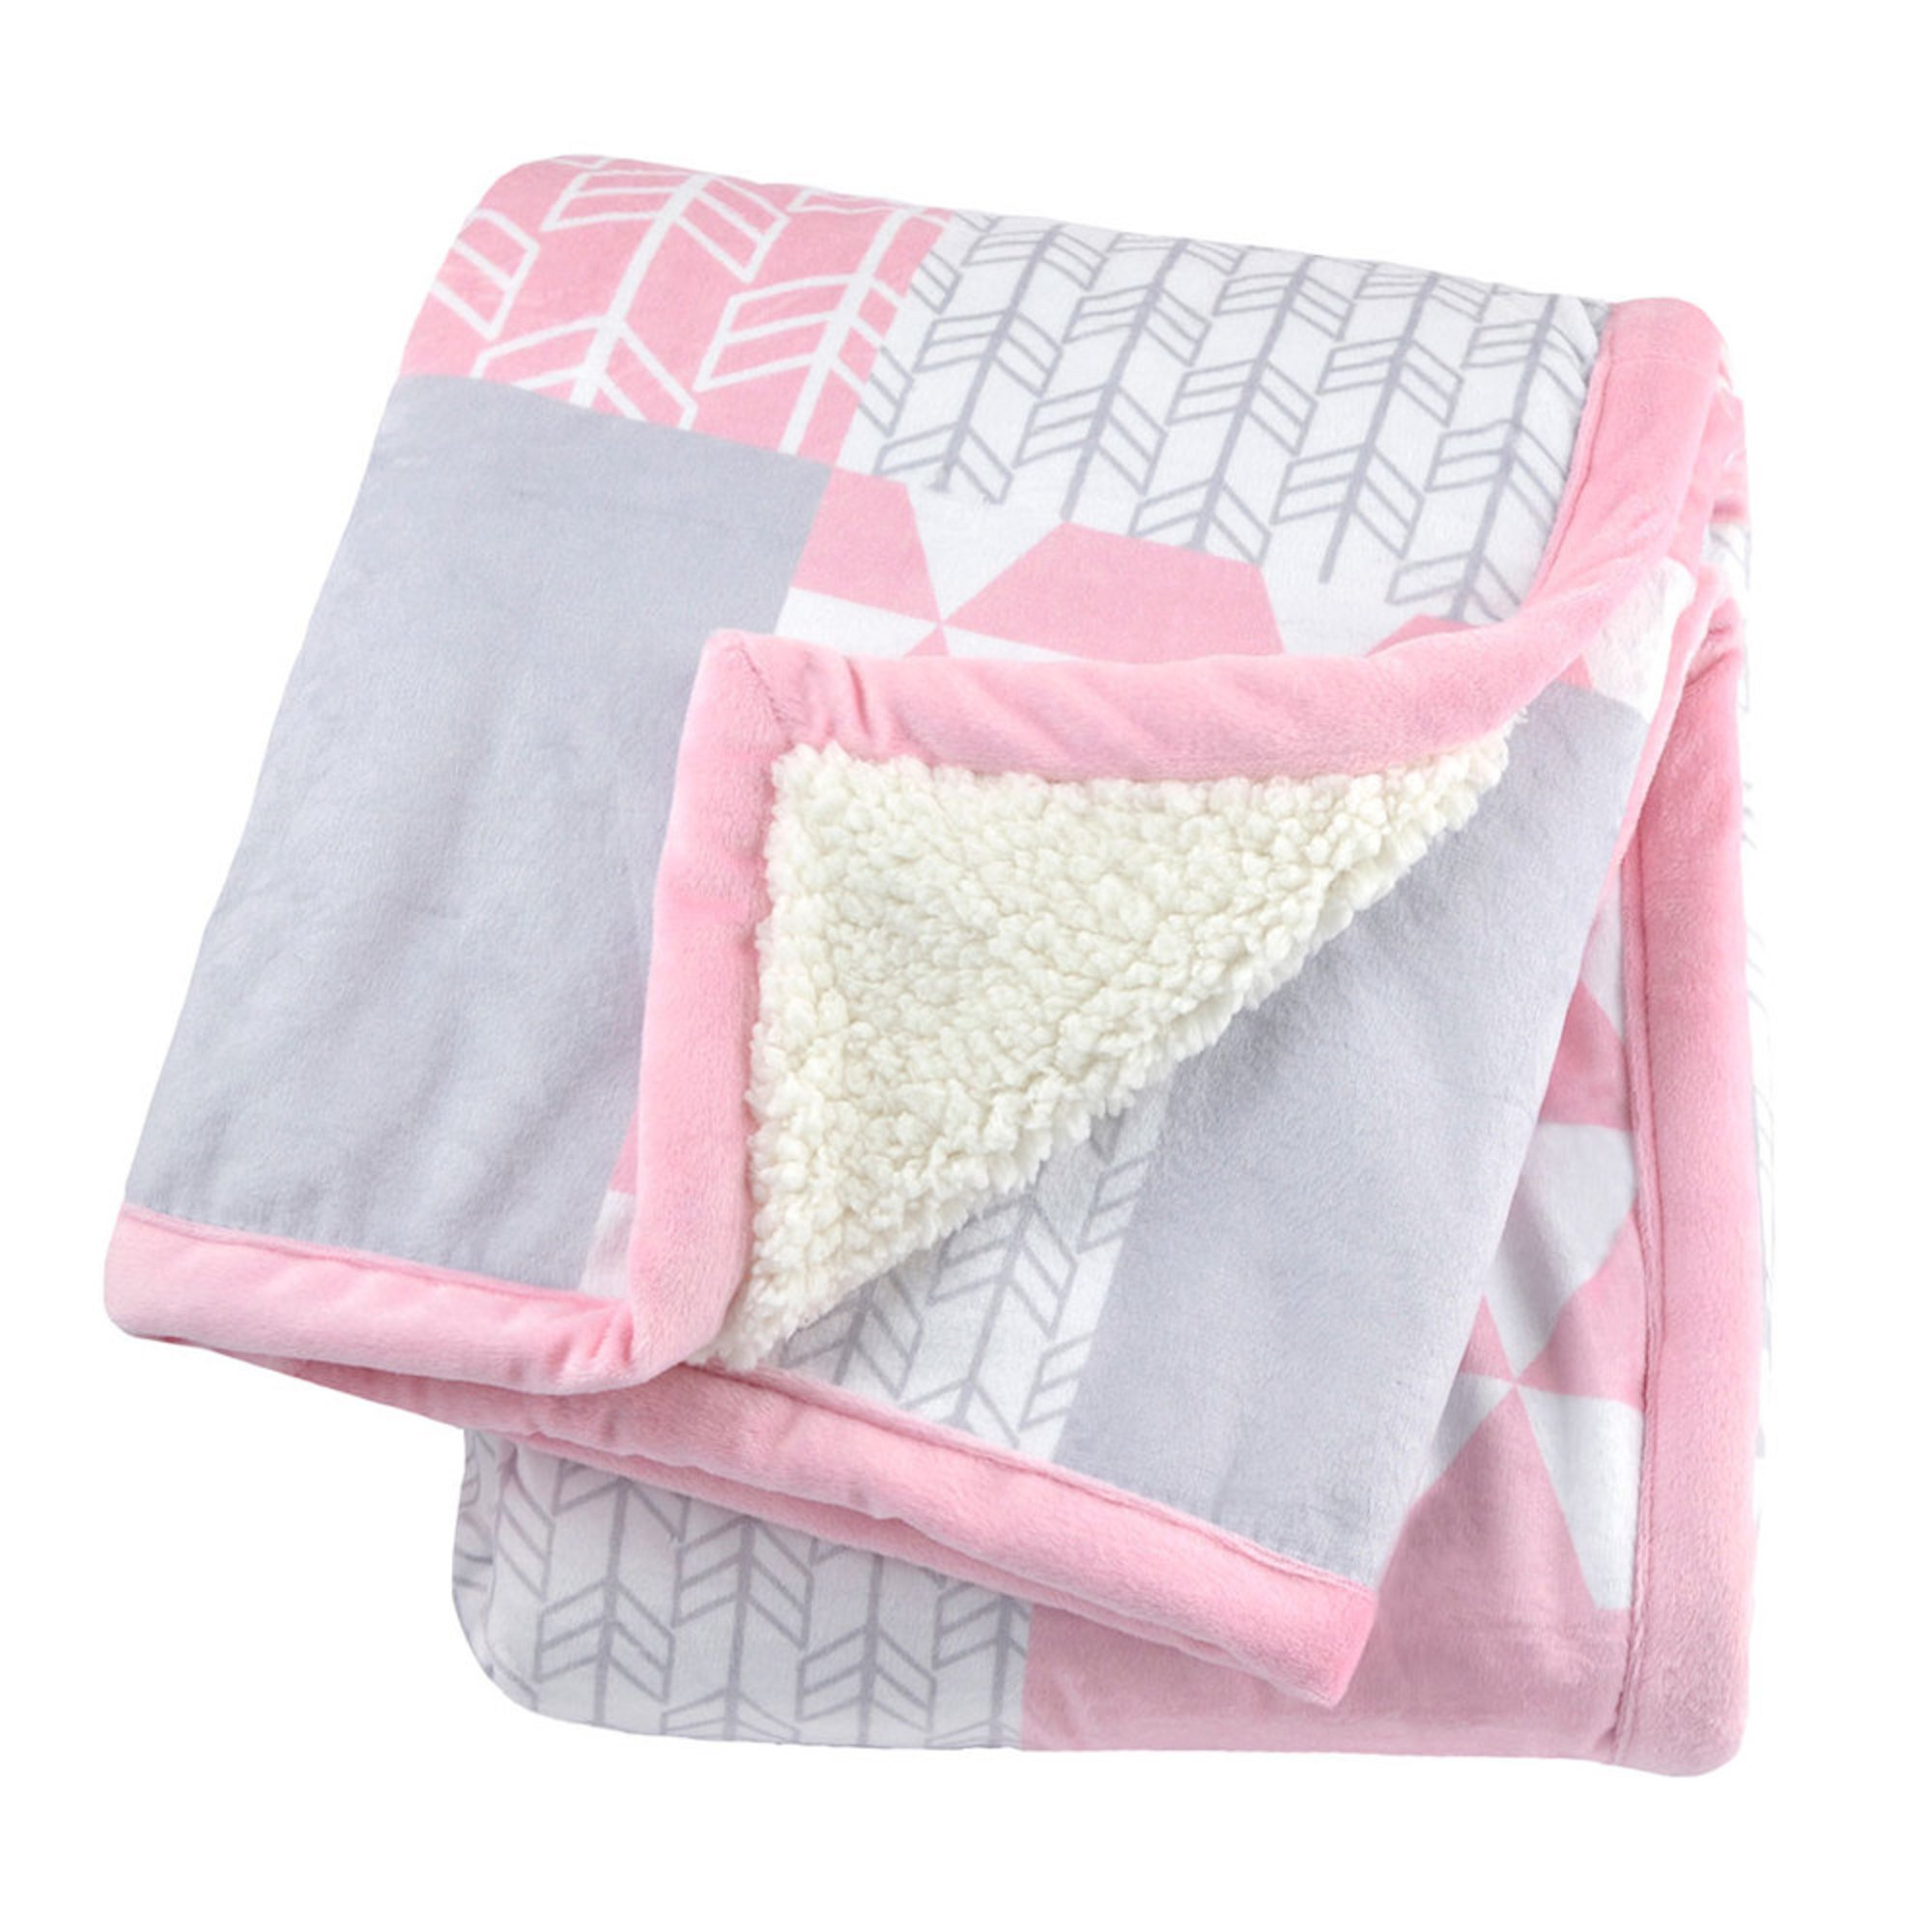 445e3eff5e Just Born 2 Ply Printed Patchwork Blanket